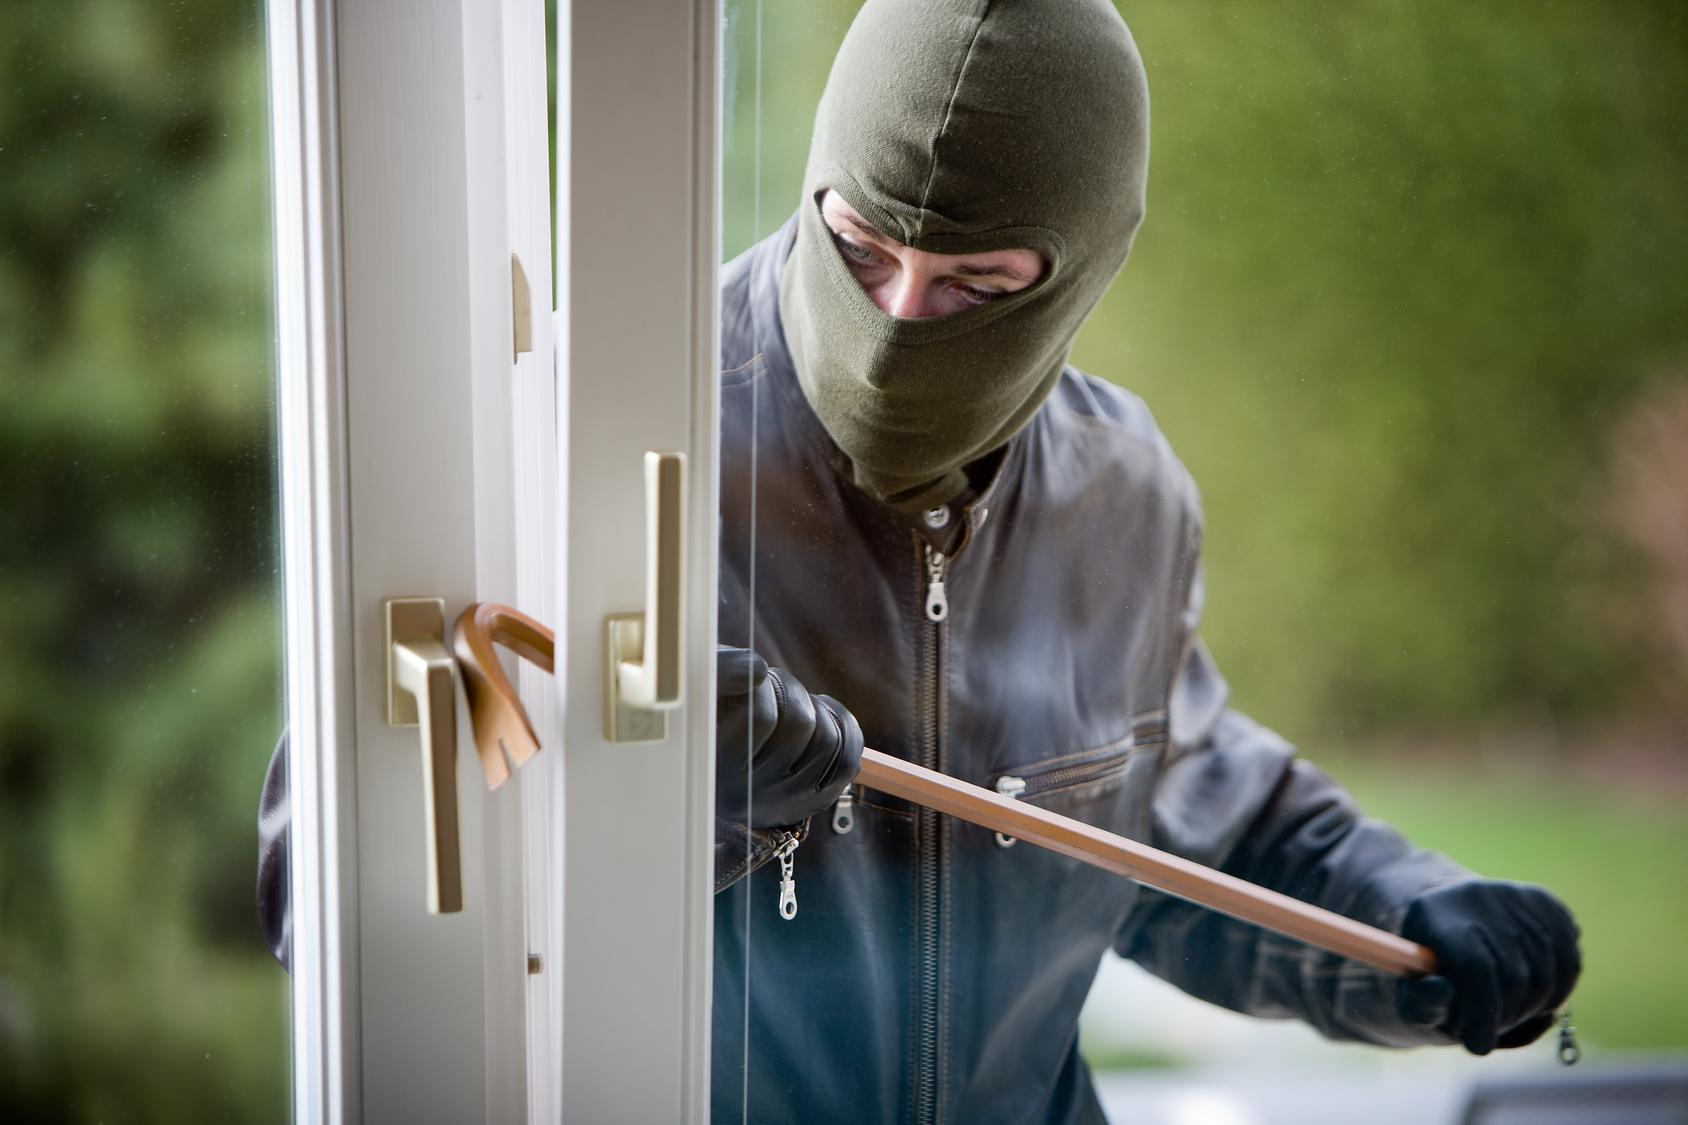 Protect Your Home Against Burglary